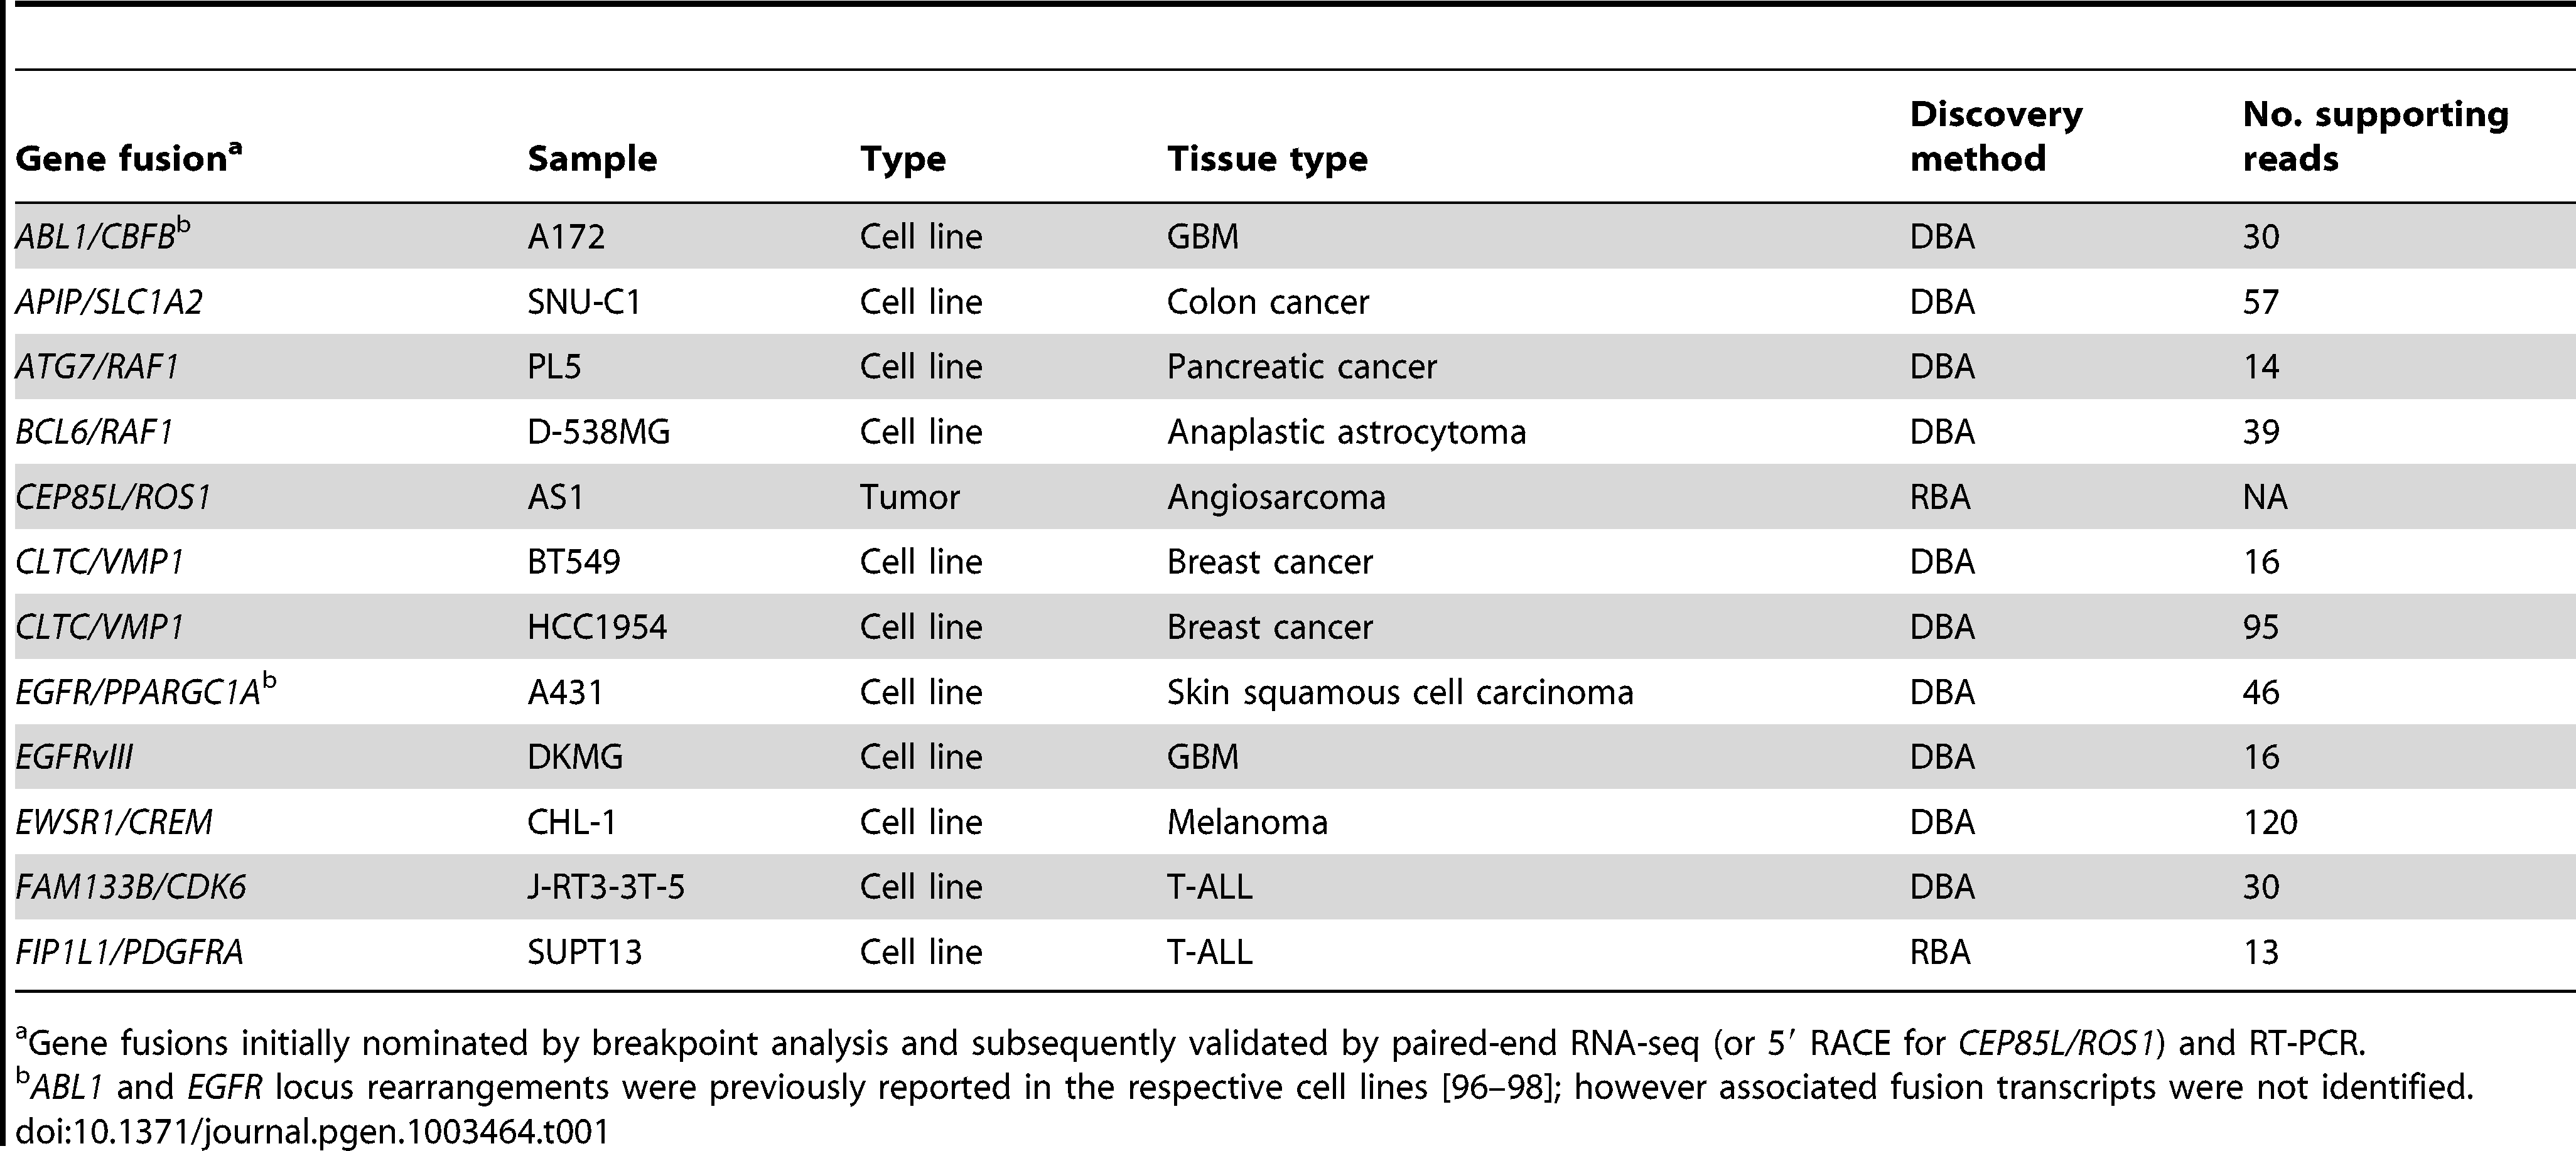 Validated gene fusions and rearrangements.